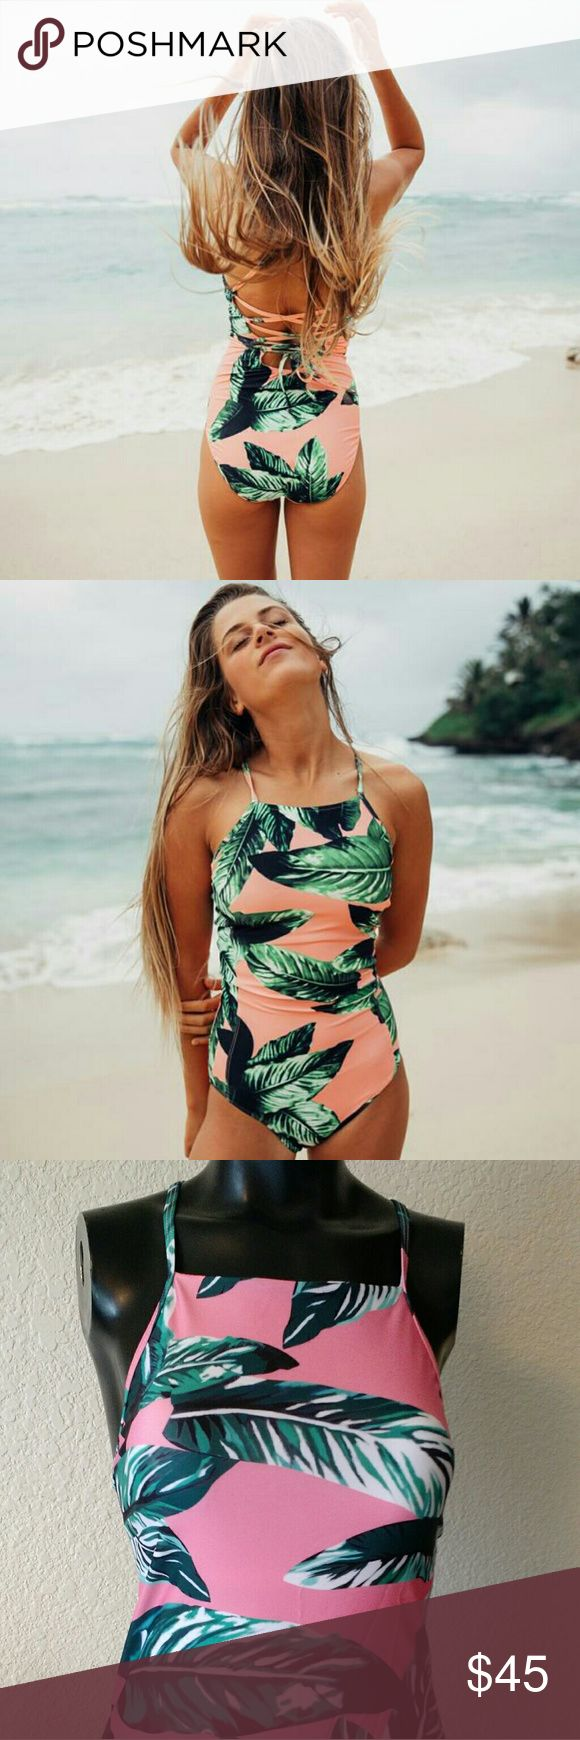 Leaf Print Waikiki Lace Up One Piece Similar to Albion Fit's Waikiki One piece. The suit runs true to size and is full coverage, not cheeky. The suit is fully lined and so fun! It does has a thin amount of cup  padding. No underwrite or pushup. Currently on the website for $128.   S 0-2 M 2-4  L 6-8 XL 8-10  *Albion Fit for exposure only* Albion Fit Swim One Pieces